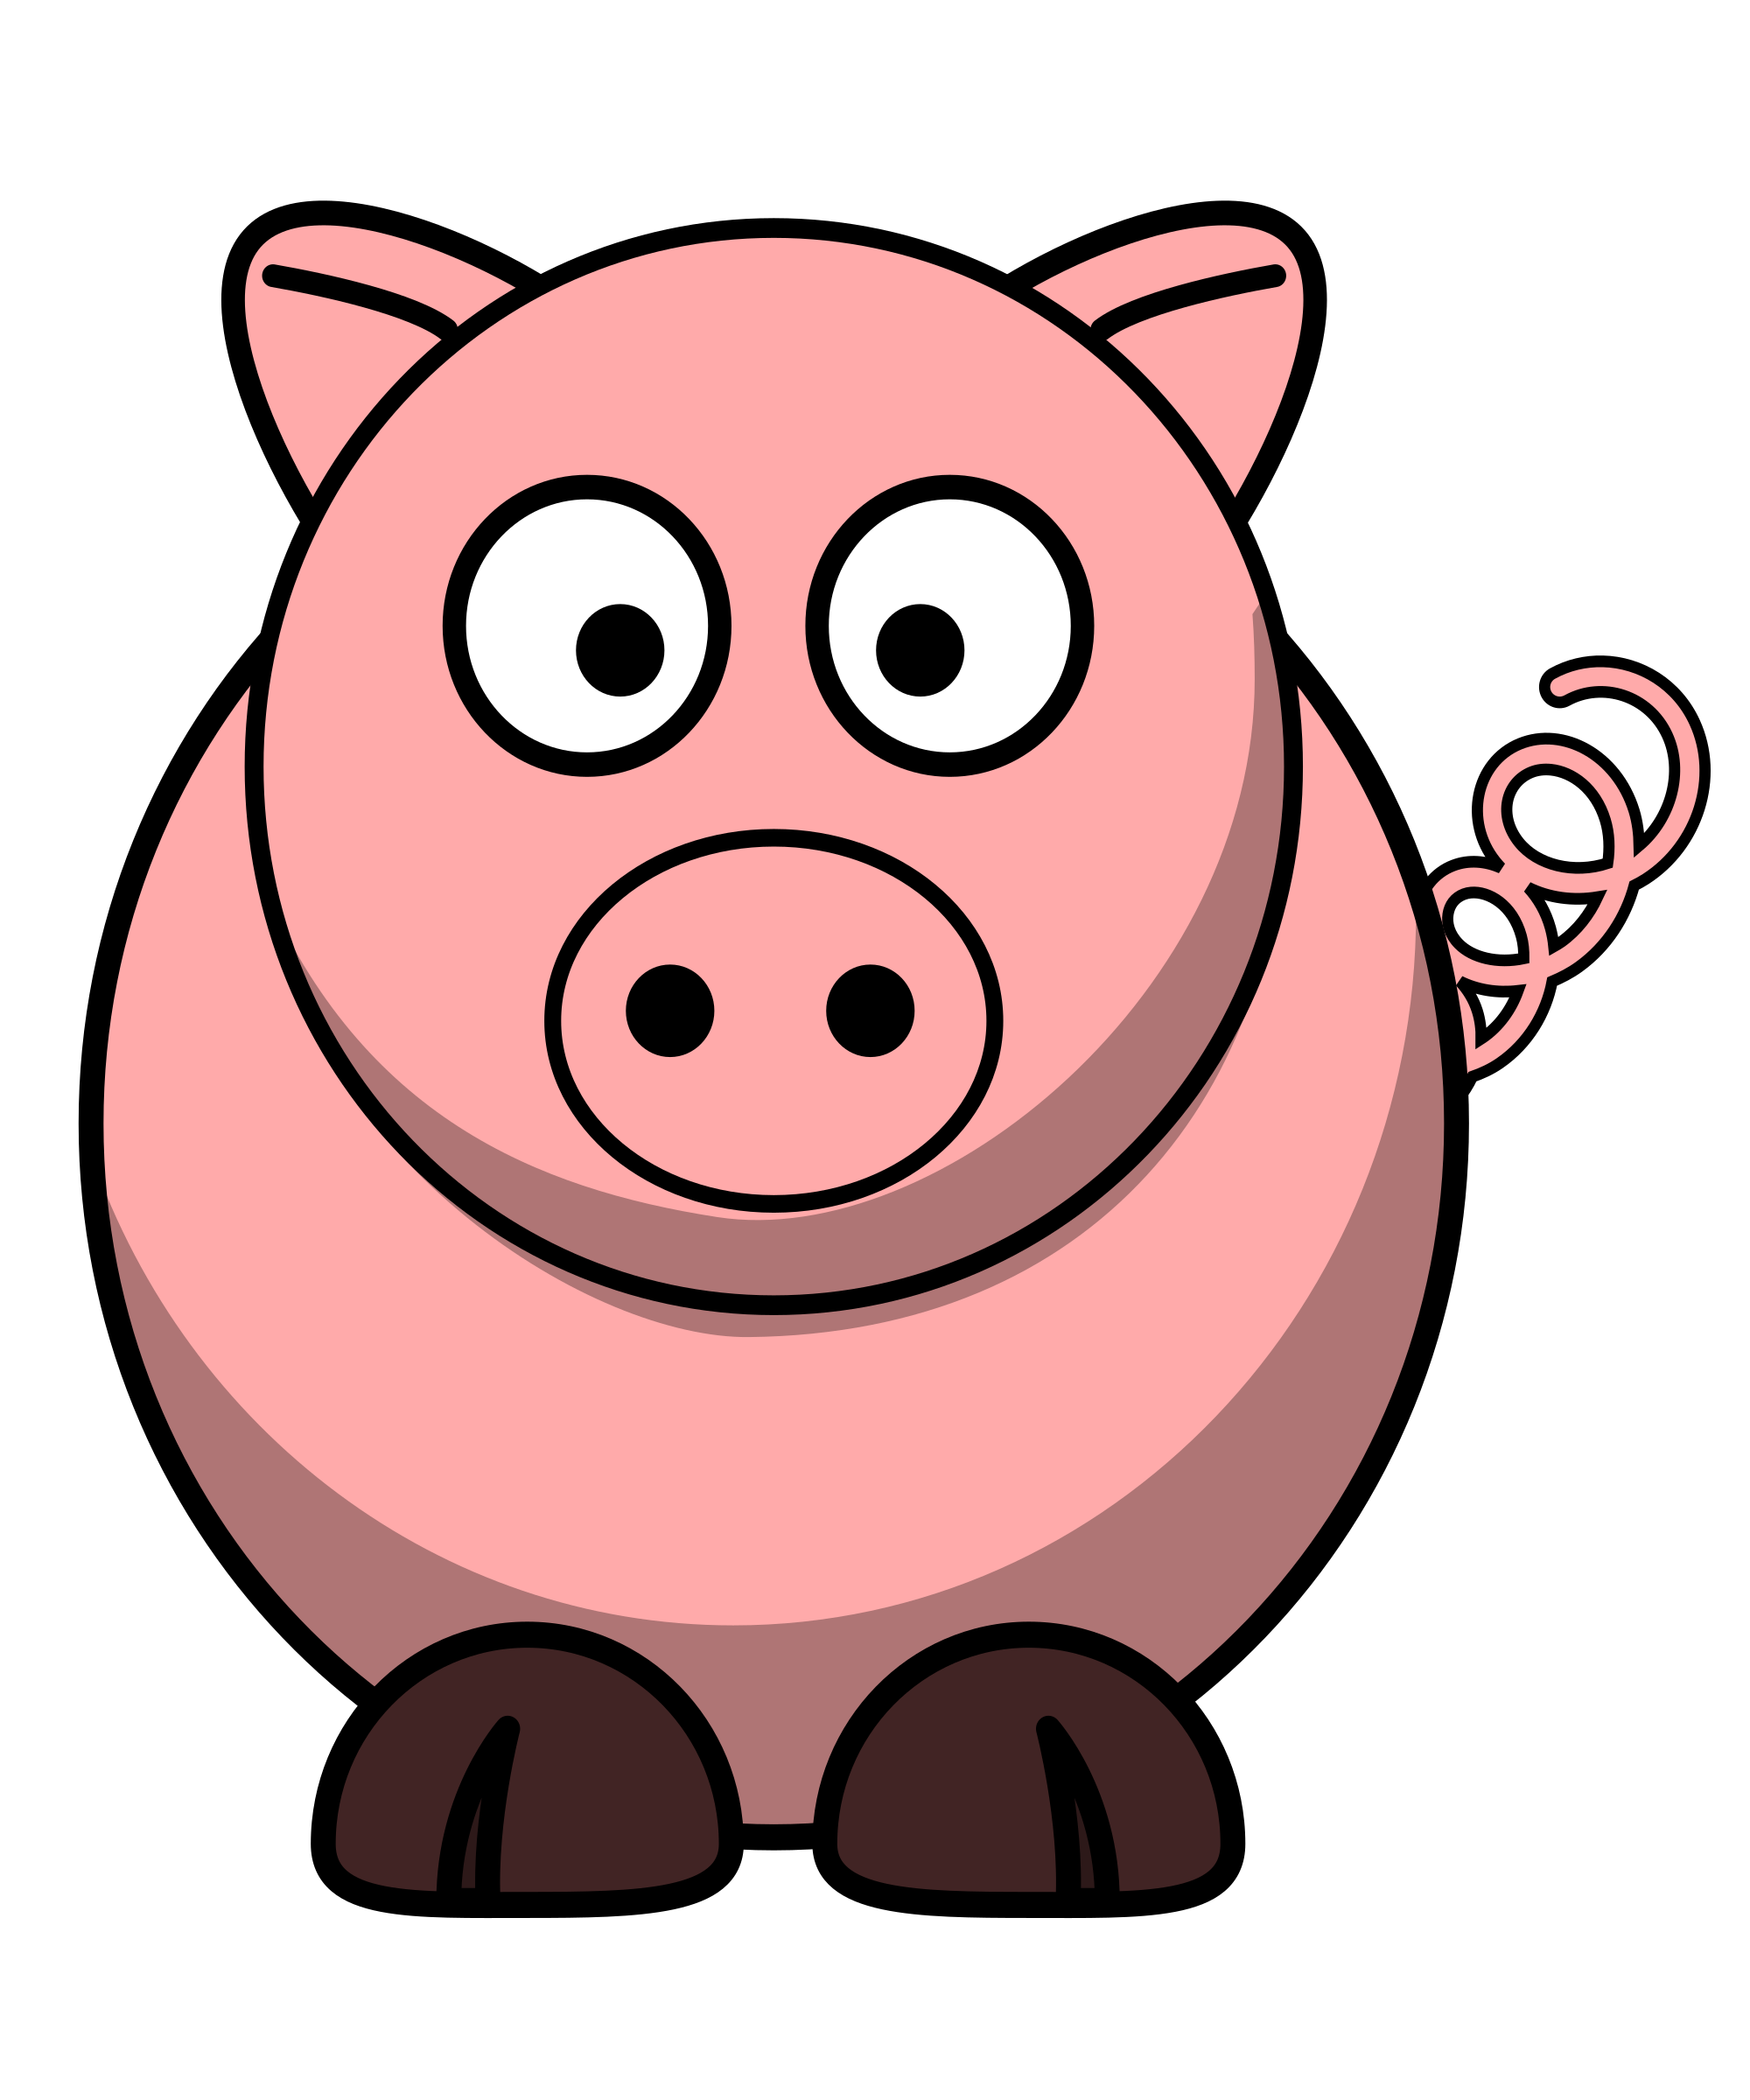 Pig laying down outline clipart vector png png freeuse stock Fat clipart pig - 188 transparent clip arts, images and ... png freeuse stock